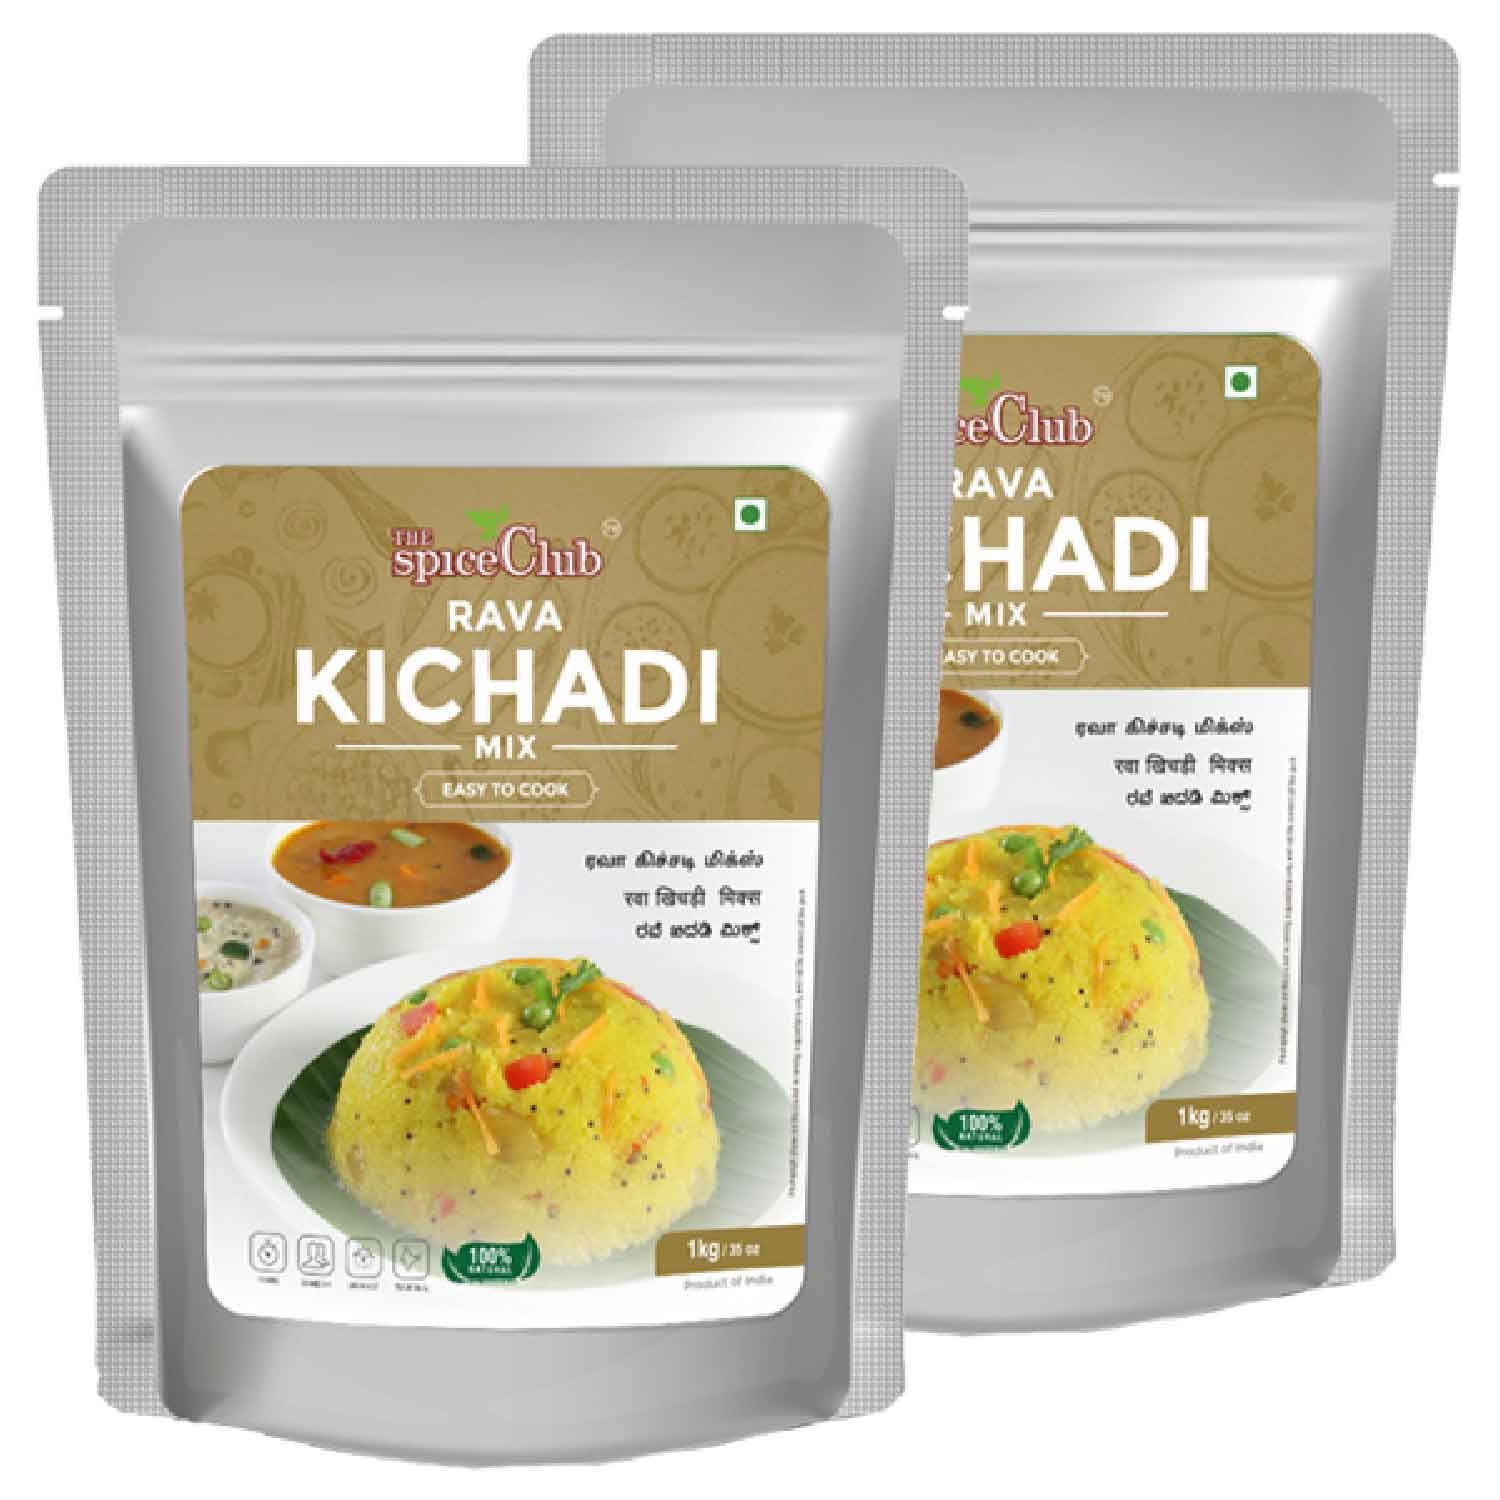 Rava Kichadi Mix 1 Kg (Pack of 2) - ( Easy To Cook, 100% Natural, Traditional)